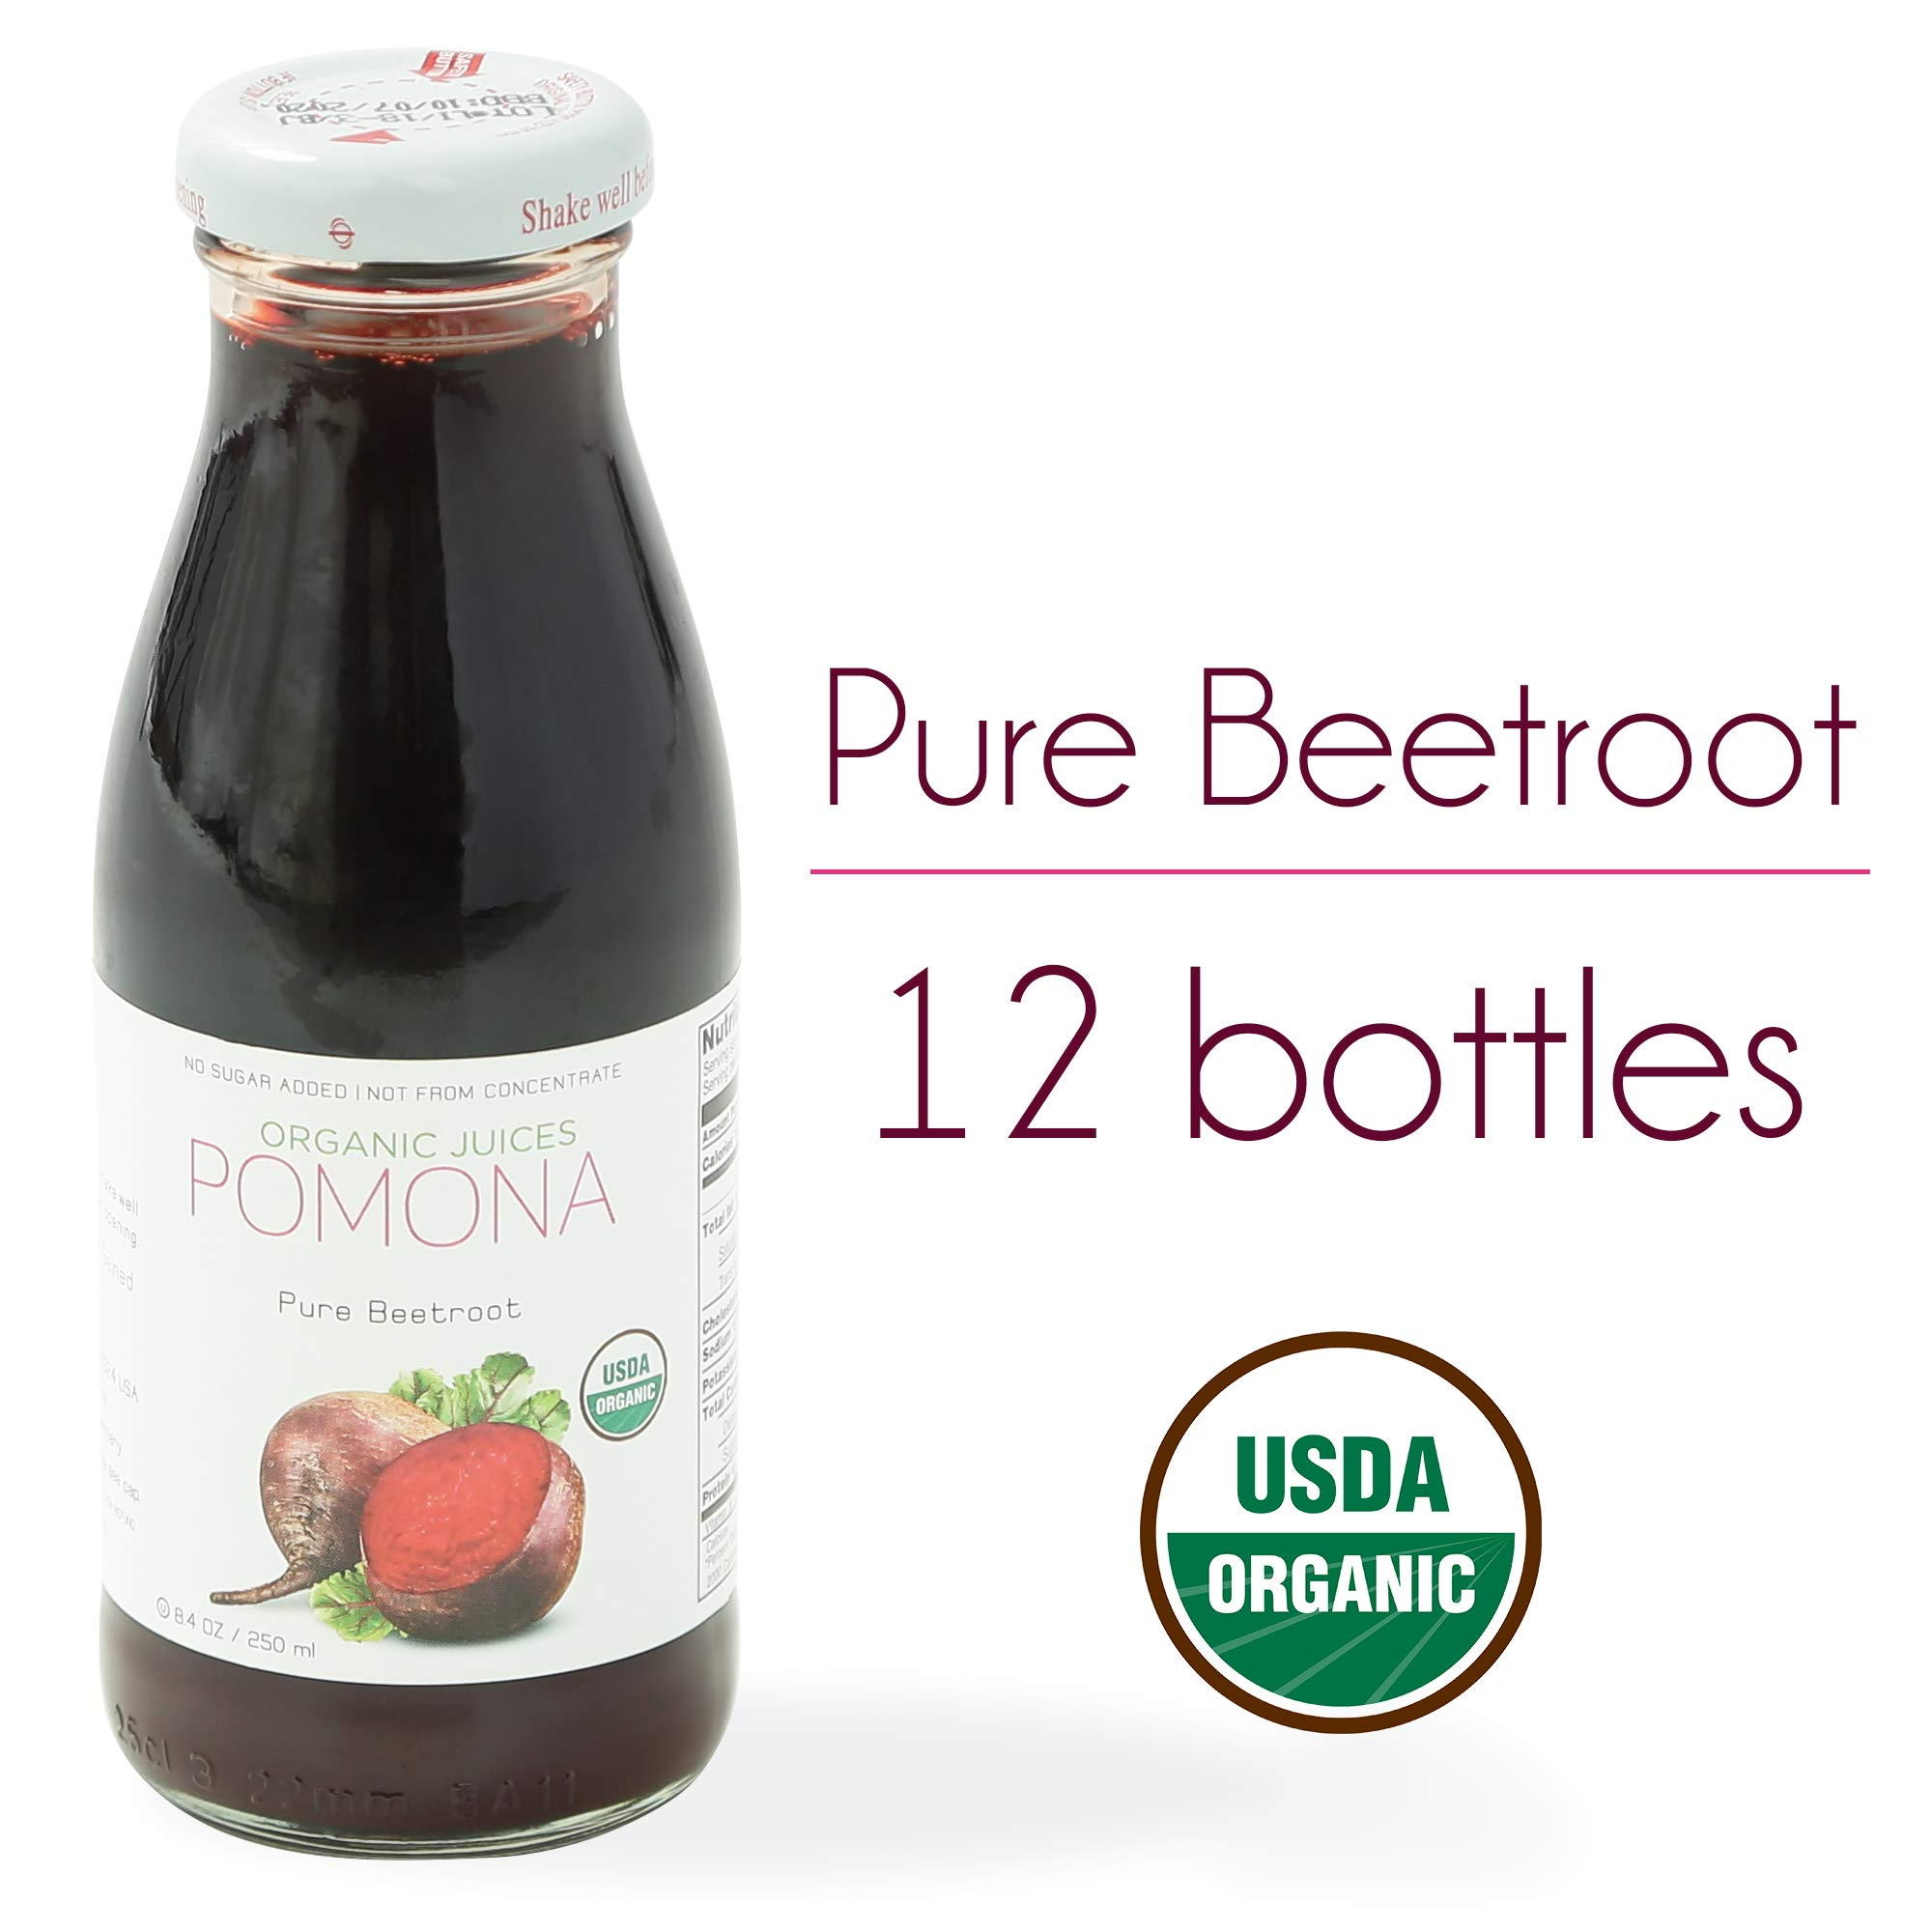 POMONA Organic Pure Beet Juice, 8.4 Ounce Bottle (Pack of 12), Cold Pressed Organic Juice, Non-GMO, No Sugar Added, Not from Concentrate, Gluten Free, Kosher Certified, Preservative Free